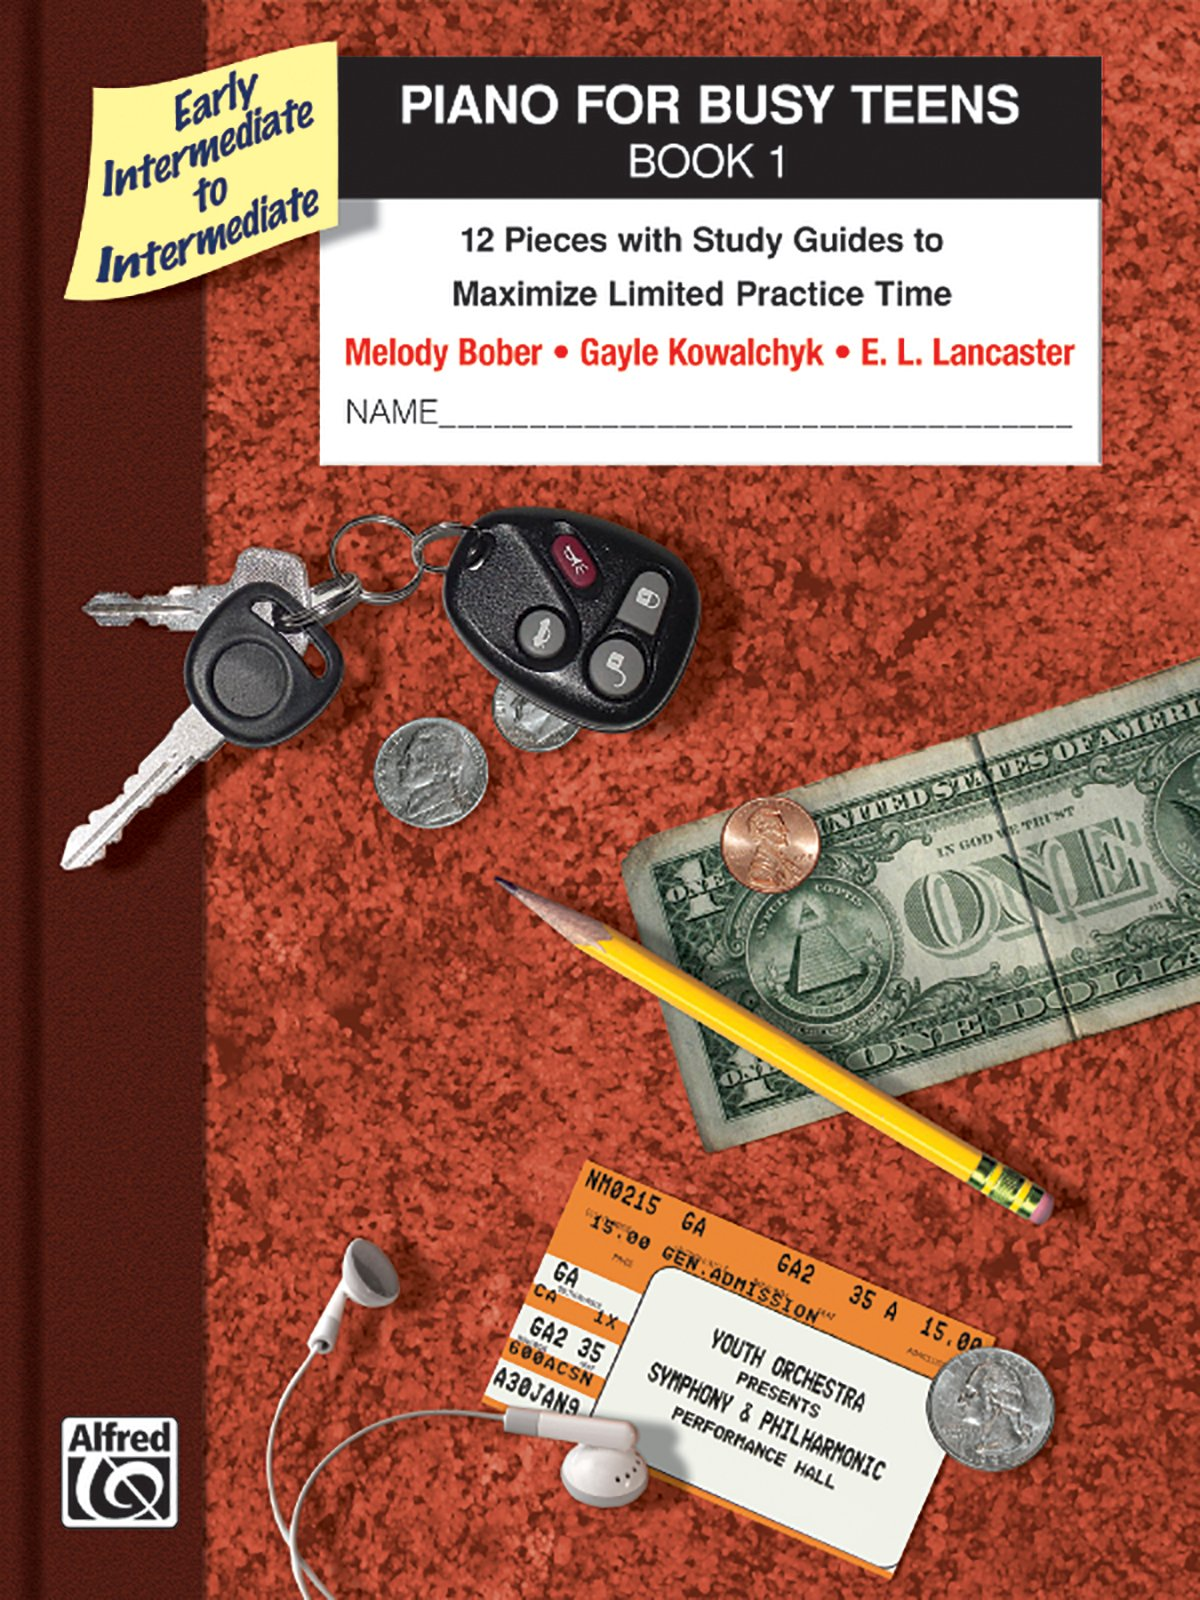 Piano for Busy Teens, Bk 1: 12 Pieces with Study Guides to